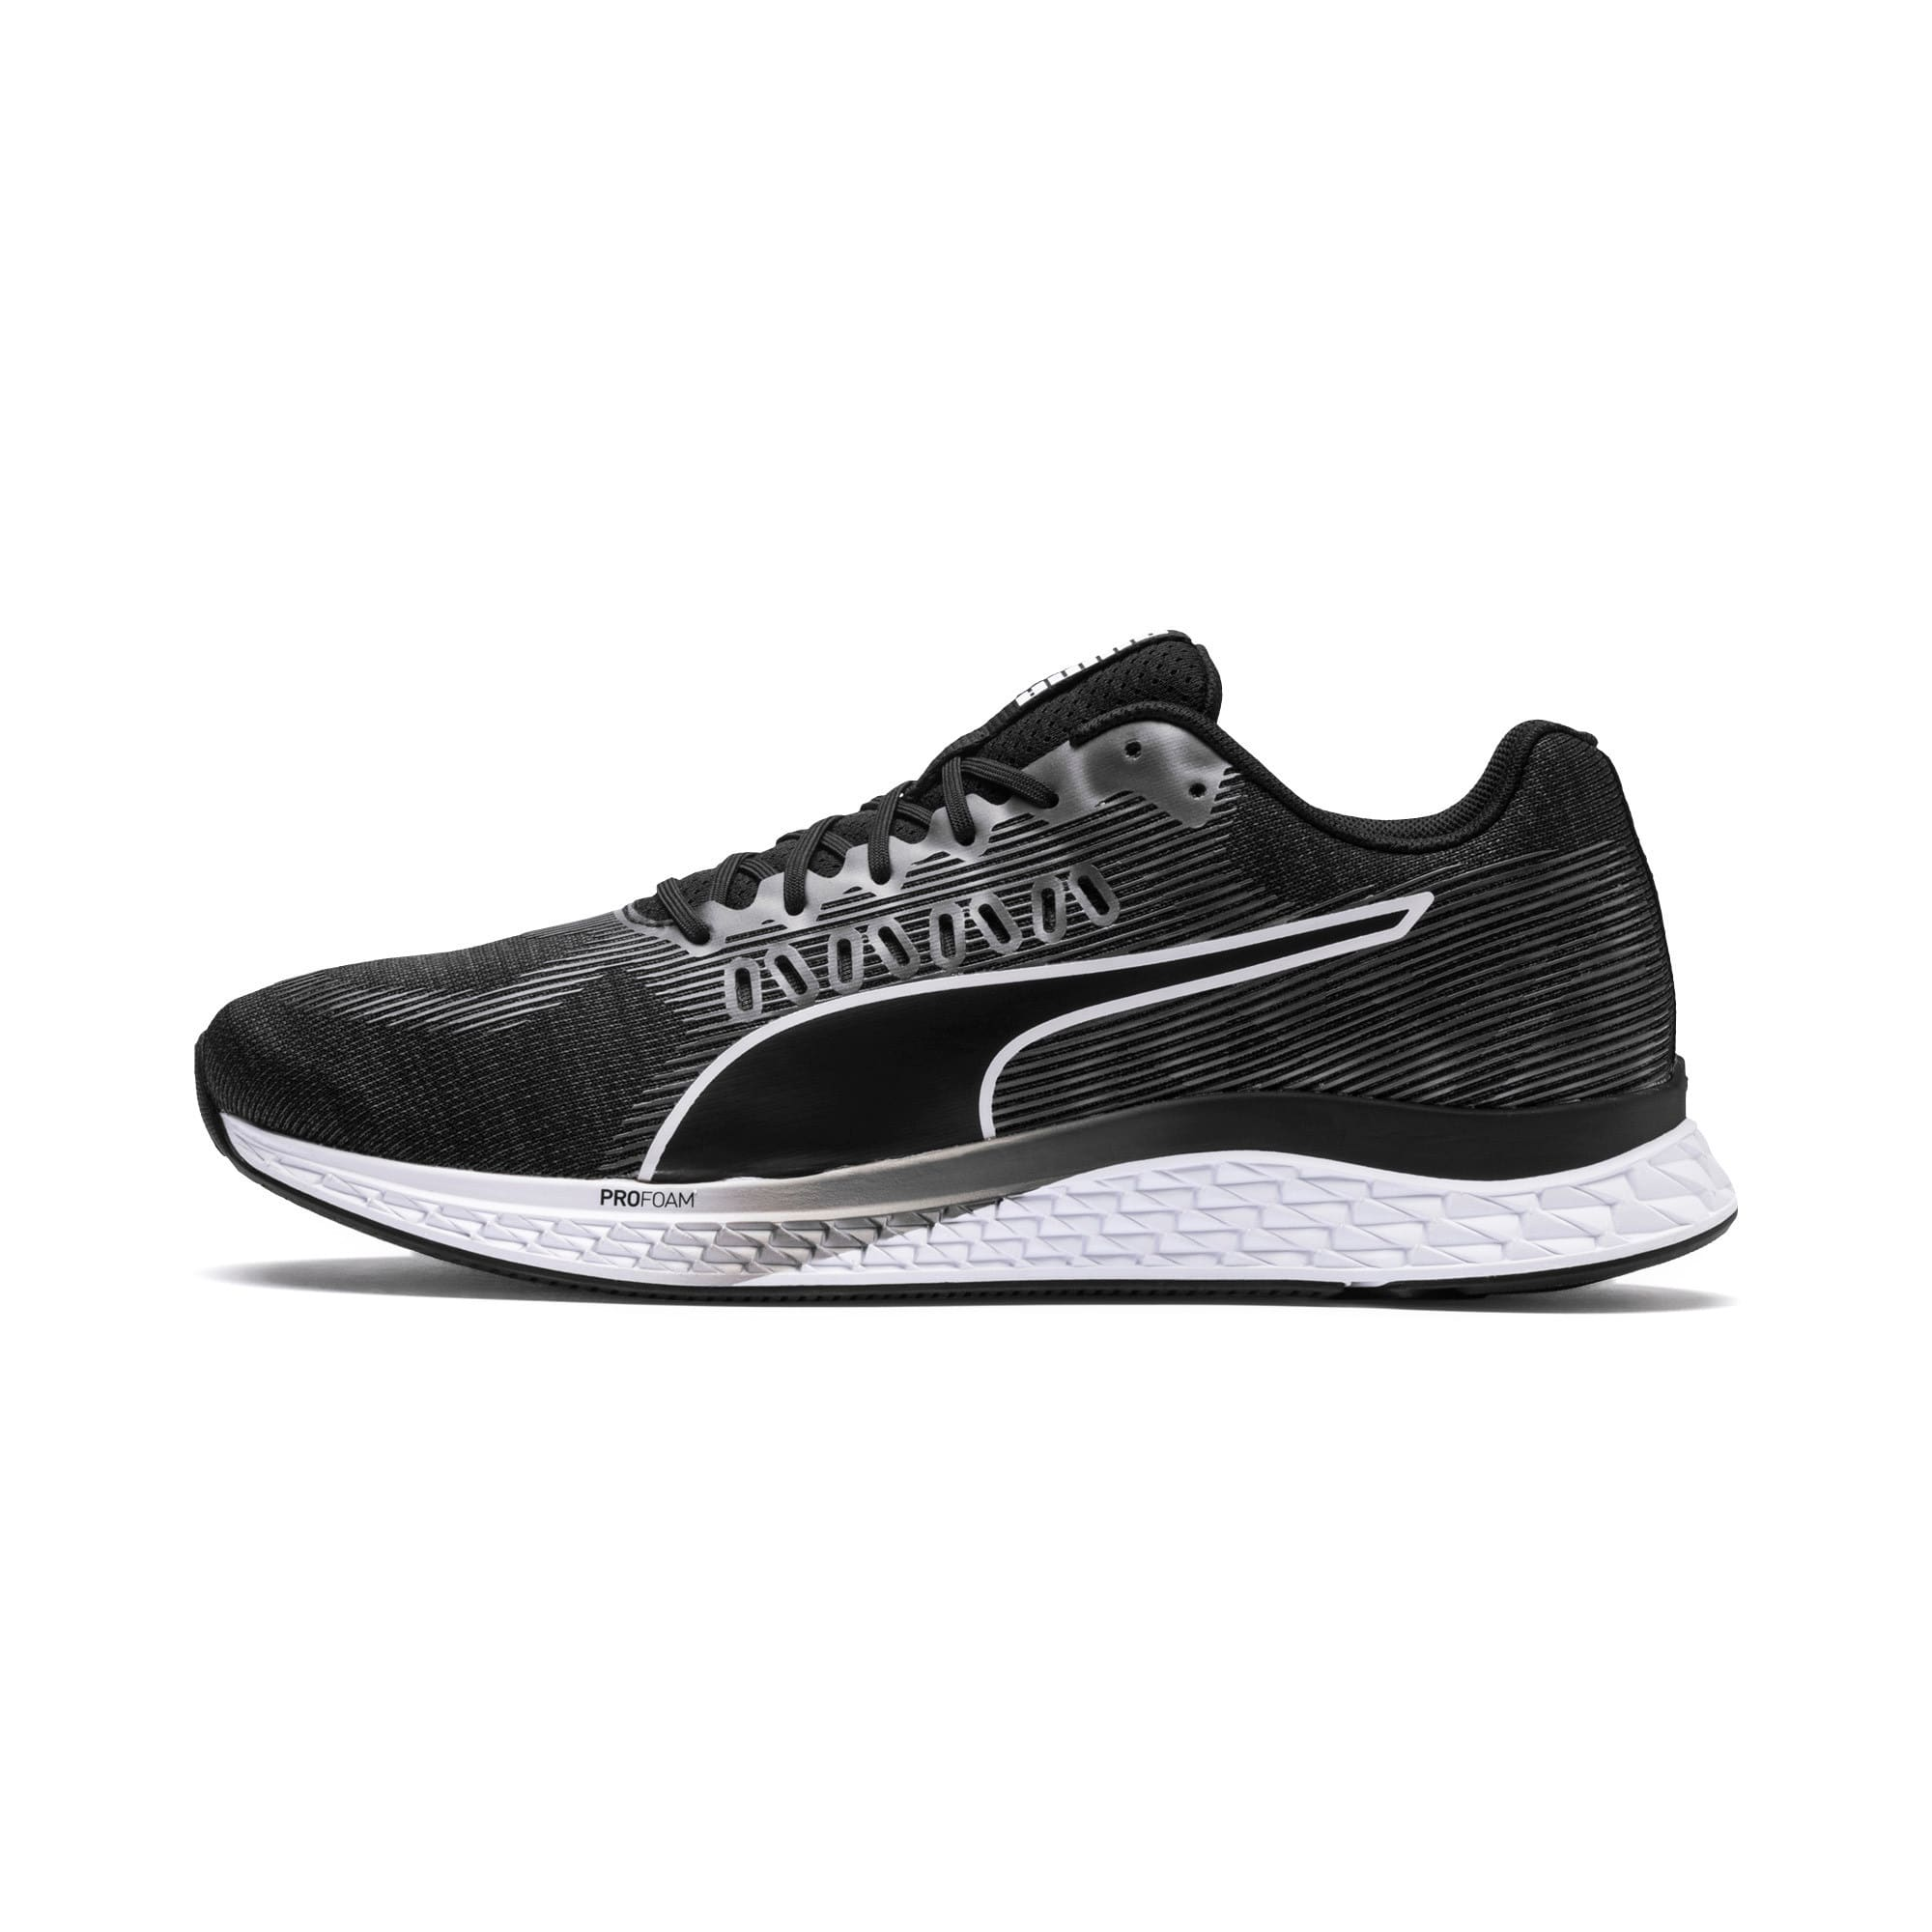 Imagen en miniatura 1 de Zapatillas de running SPEED SUTAMINA, Puma Black-Puma White, mediana